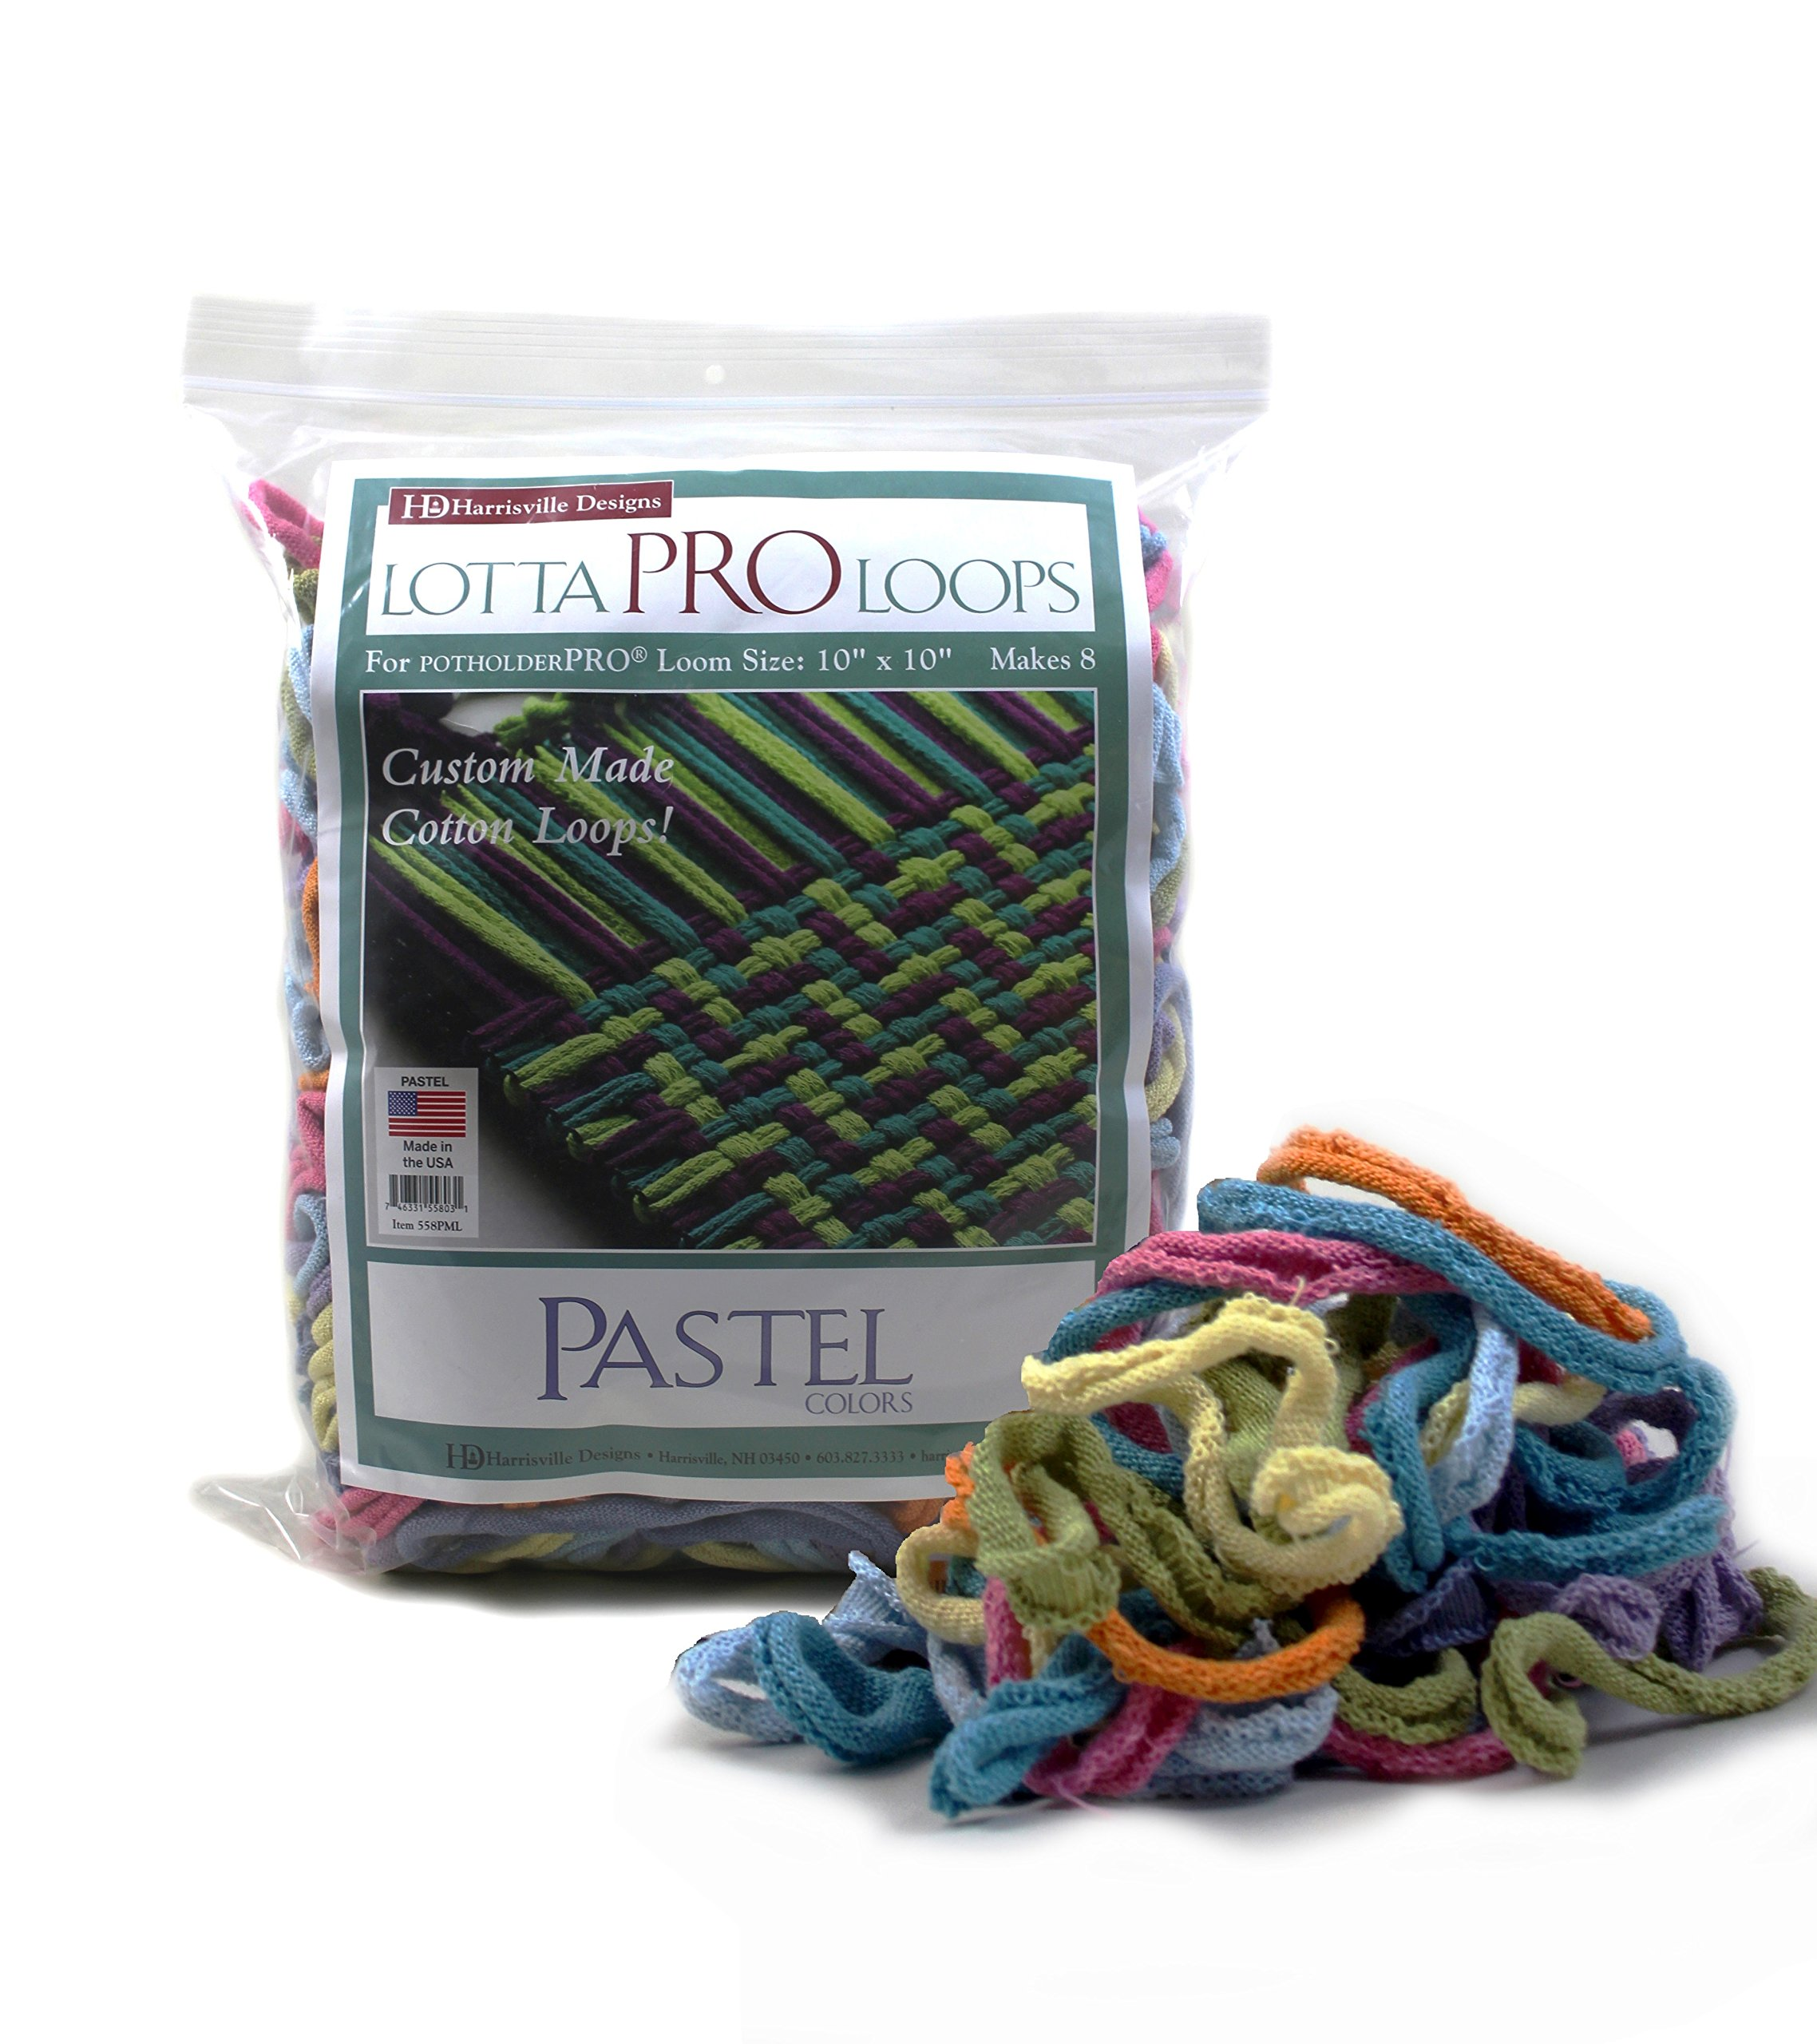 Harrisville 10'' Pro Pastel Lotta Loops in Assorted Colors - Makes 8 Potholders by Harrisville Designs